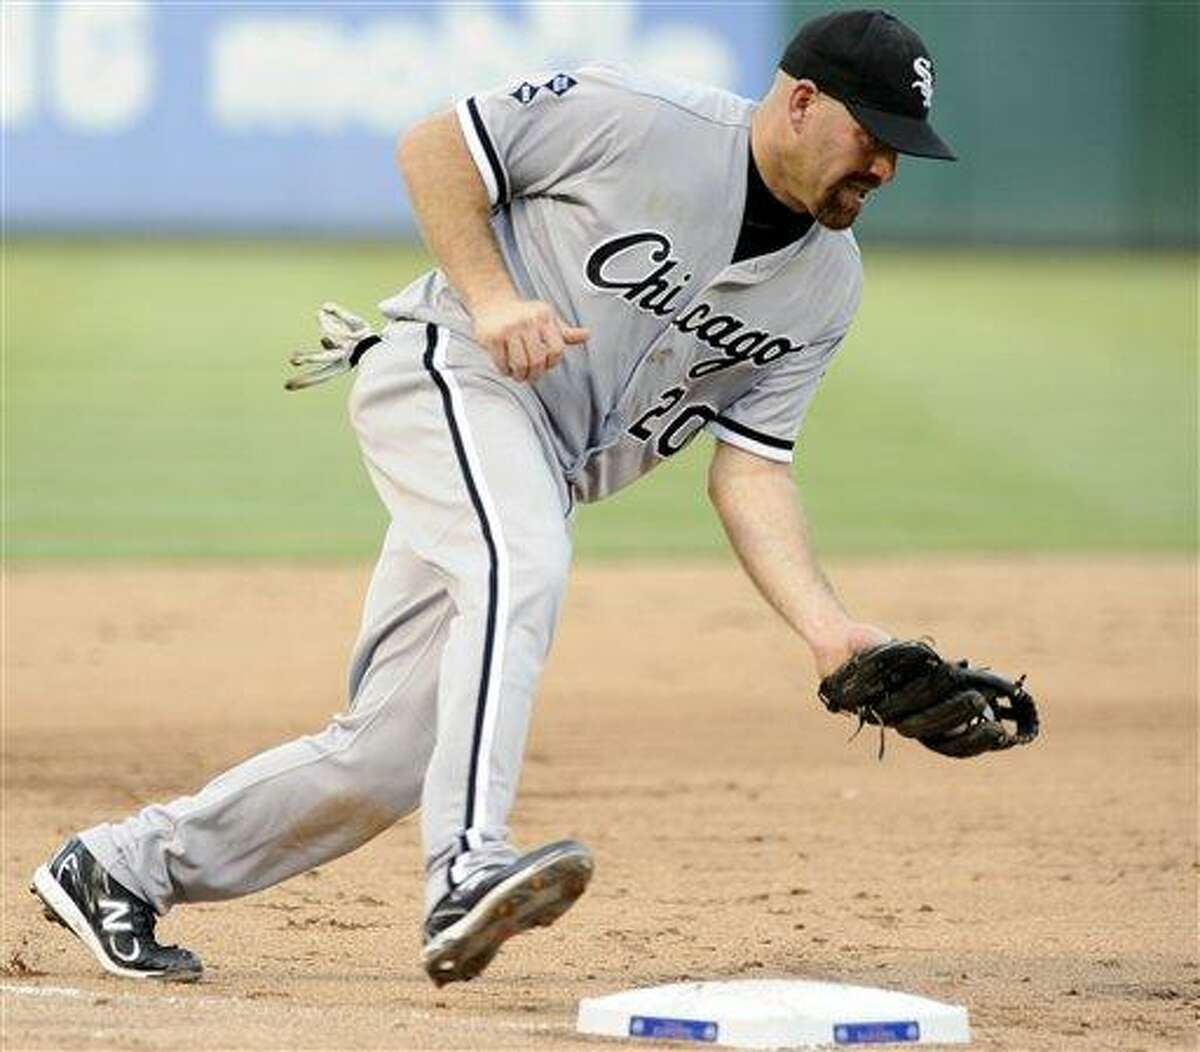 FILE - In this July 28, 2012, file photo, Chicago White Sox third baseman Kevin Youkilis (20) makes a play on the ball during a baseball game against the Texas Rangers in Arlington, Texas. A person familiar with the negotiations told The Associated Press Tuesday, Dec. 11, that free agent Youkilis and the New York Yankees have reached agreement on a $12 million, one-year deal. (AP Photo/Matt Strasen, File)